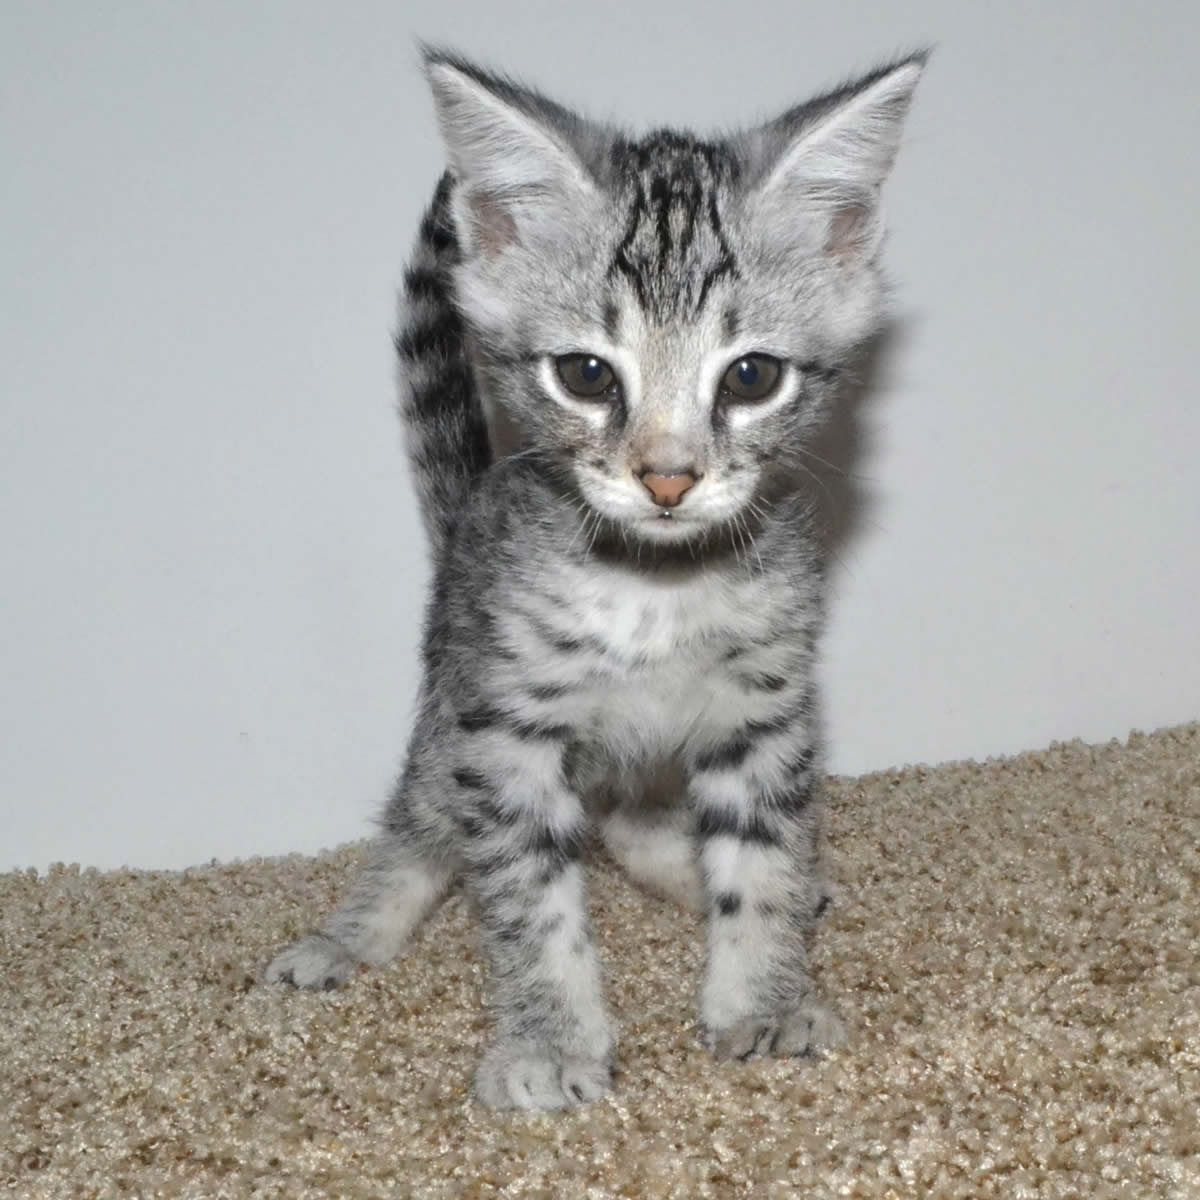 f2-savannah-kittens-tb0901f.jpg